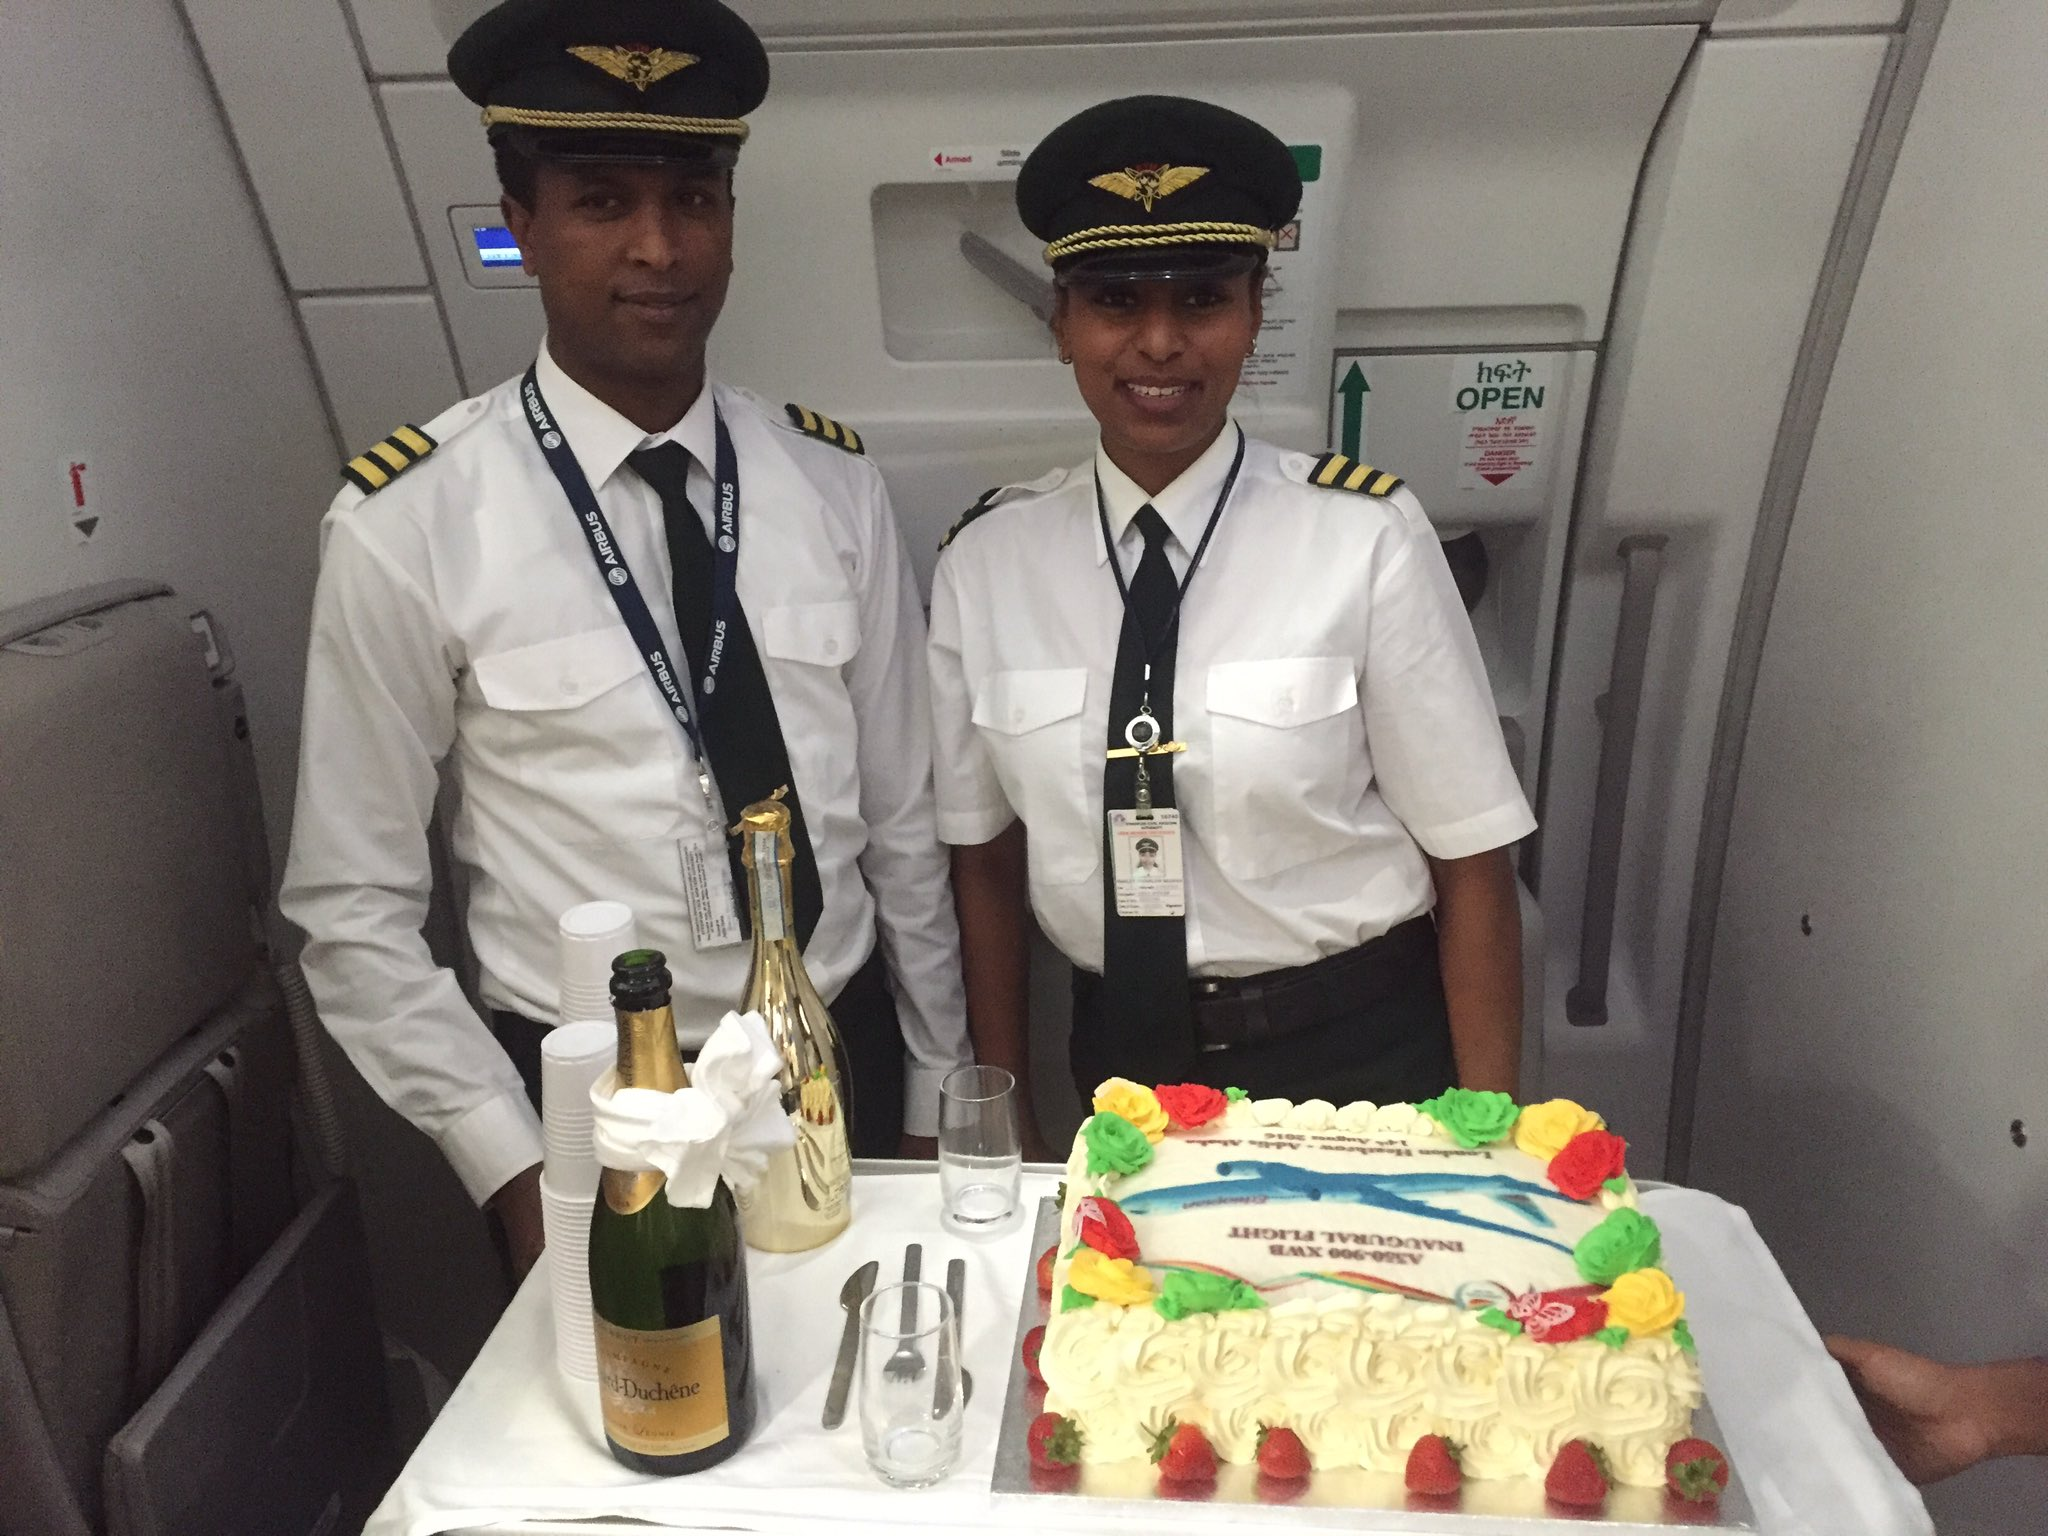 Cake and champagne to mark the first @flyethiopian @Airbus A350 flight from Heathrow to Addis Ababa. https://t.co/bRRtbub7Rh